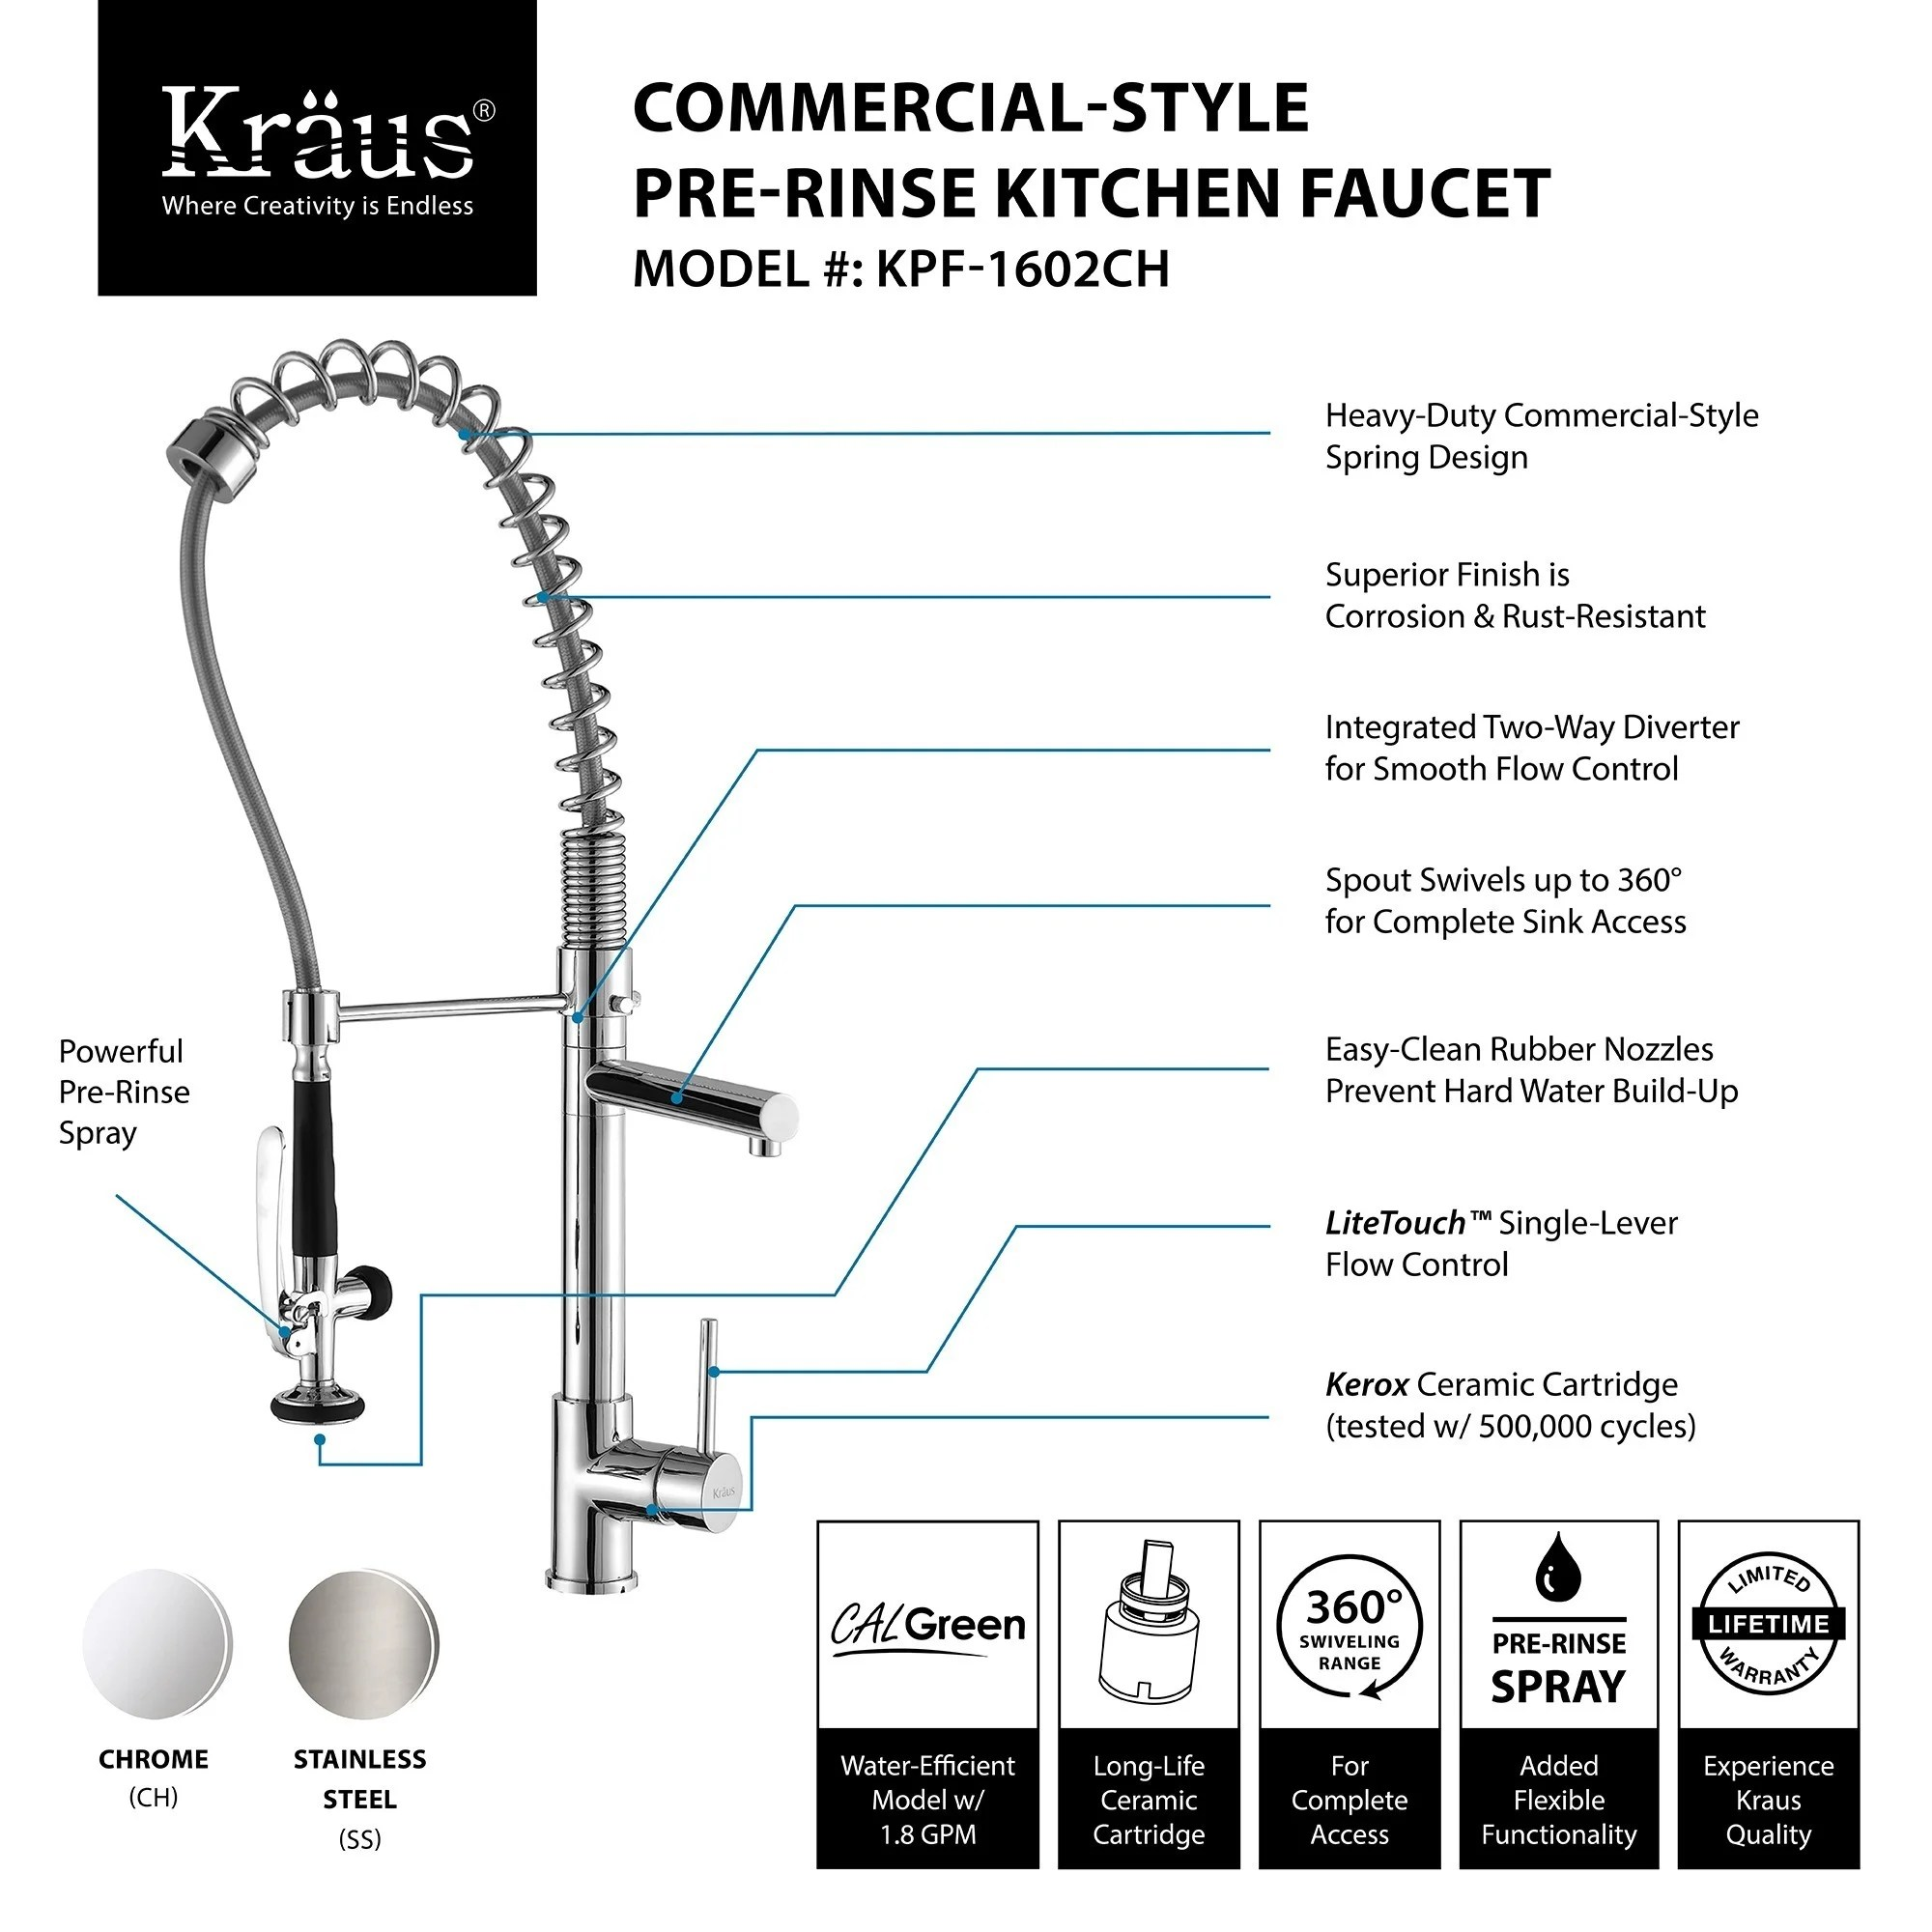 heavy duty kitchen faucet color choices for cabinets shop kraus kpf 1602 commercial style 1 handle 2 function pre rinse sprayhead pull down on sale free shipping today overstock com